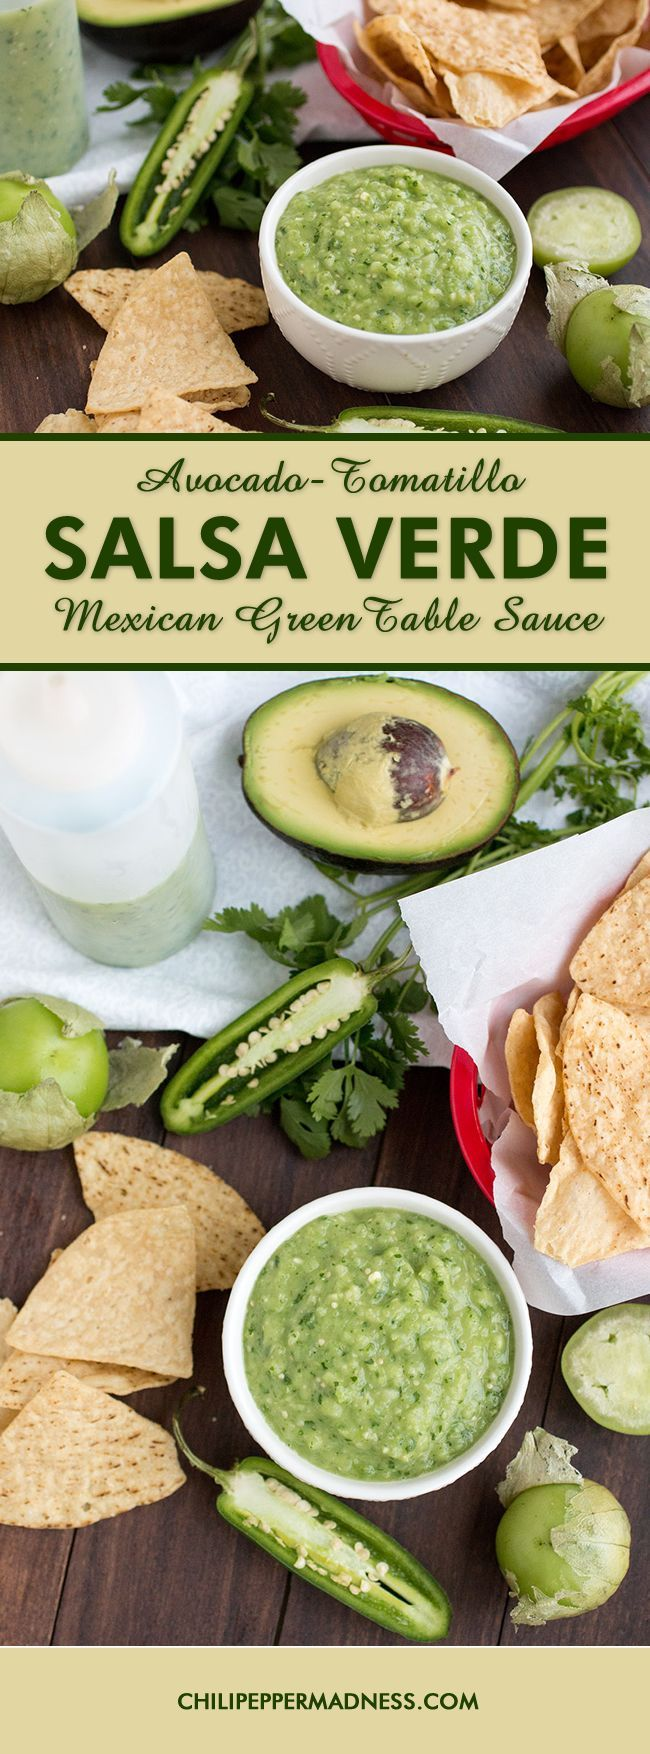 Avocado-Tomatillo Salsa Verde (or Mexican Green Table Sauce) - A recipe for the green sauce you find in Mexican restaurants. It's an ideal taco or burrito sauce, but you can also serve it as a salsa with salted chips.